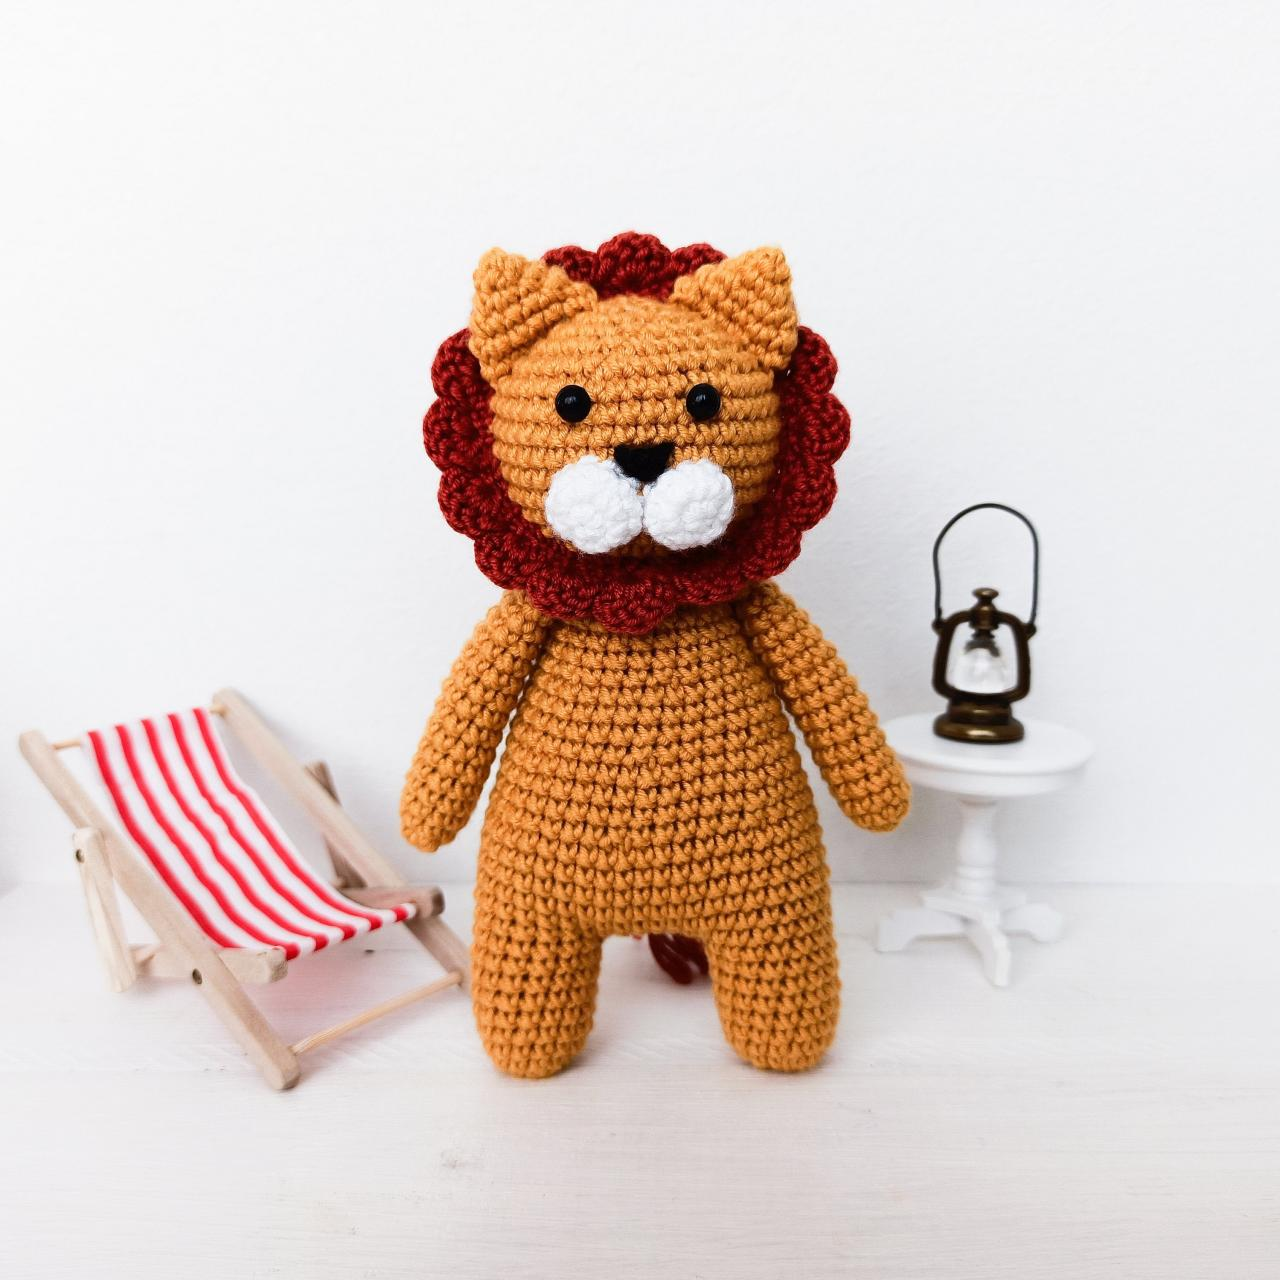 Amigurumi lion Crochet lion Plush lion Baby soft toy Lion toy Animal toy Stuffed toy Stuffed lion Plush toy Baby gift